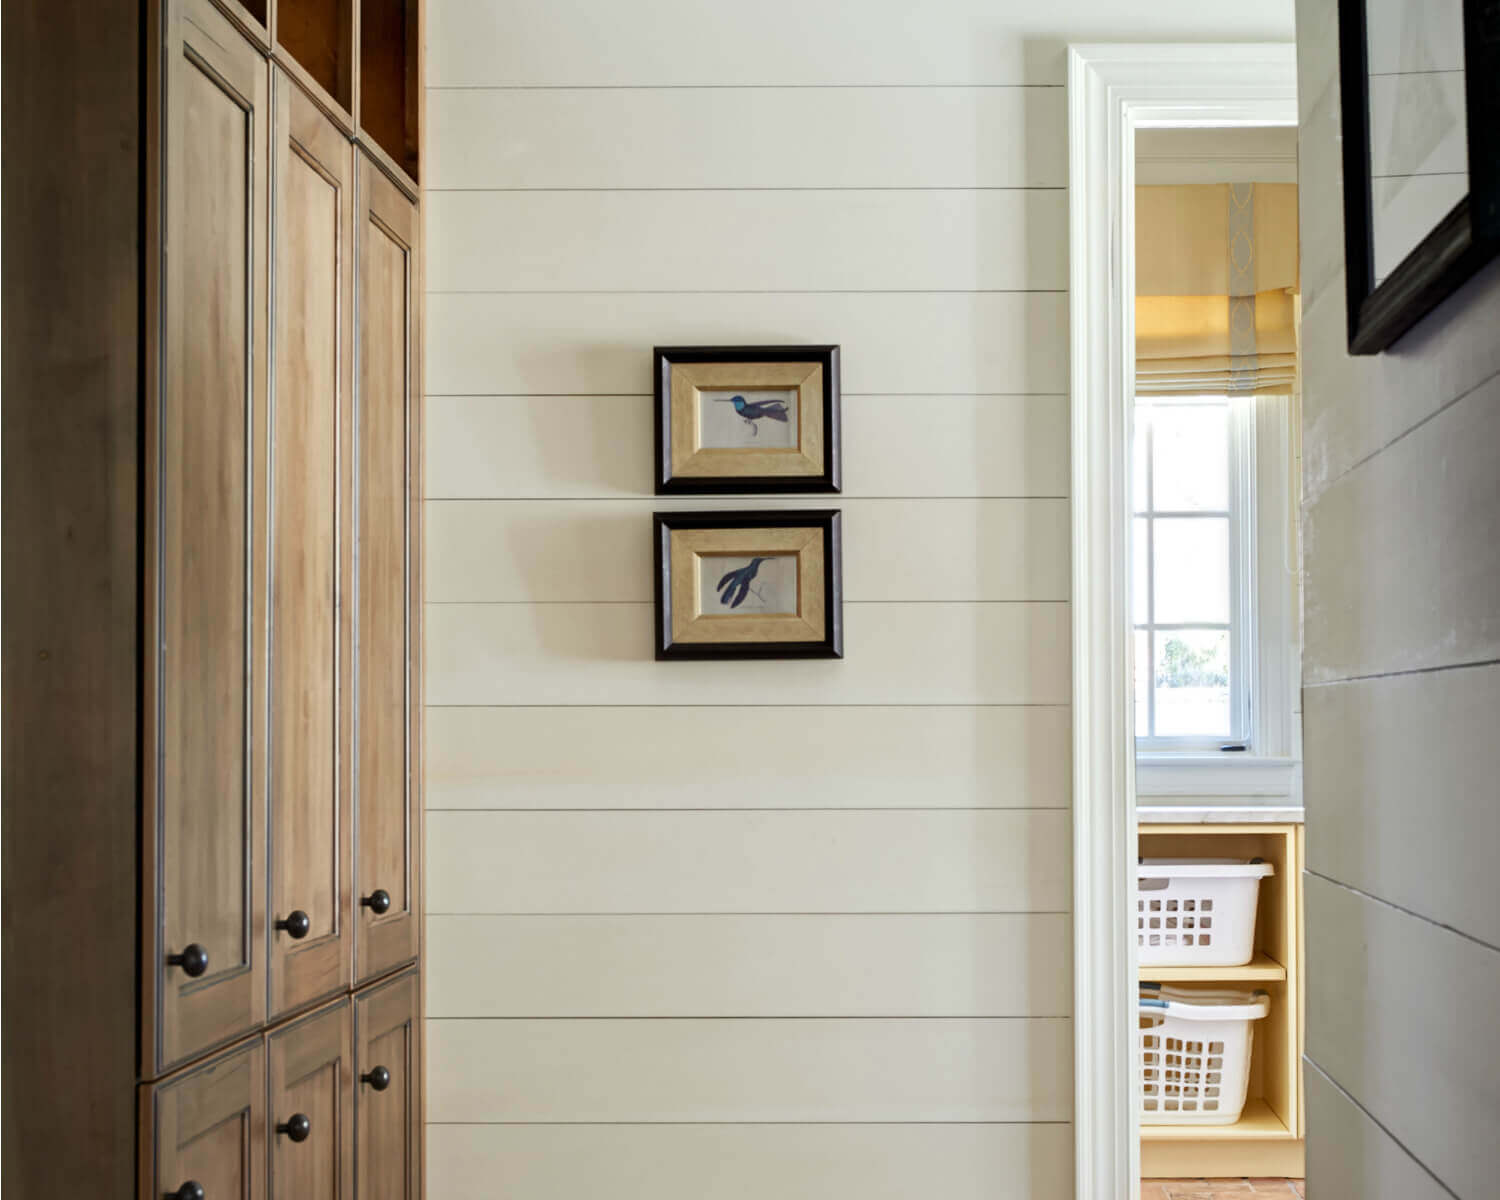 Custom Cabinetry Storage Solutions for Tight Spaces